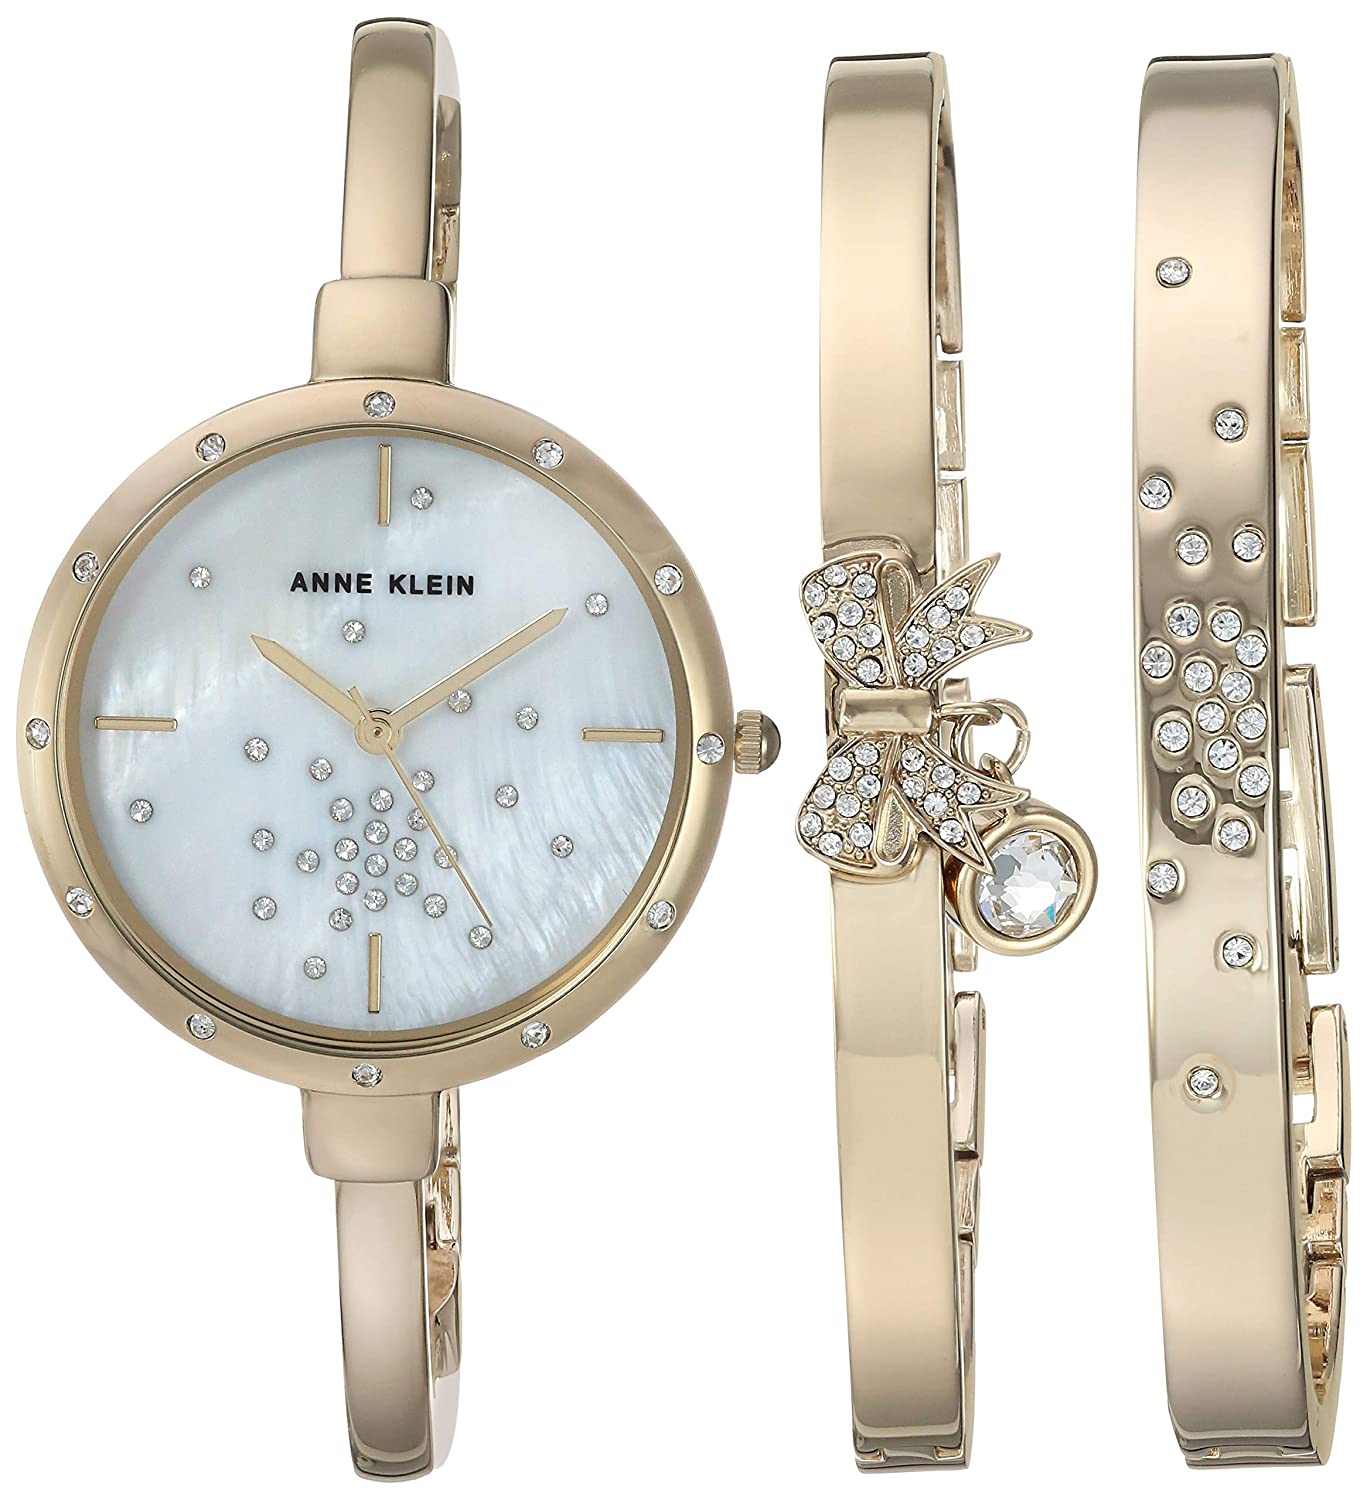 Anne Klein Women s AK 3274 Swarovski Crystal Accented Watch and Bracelet Set